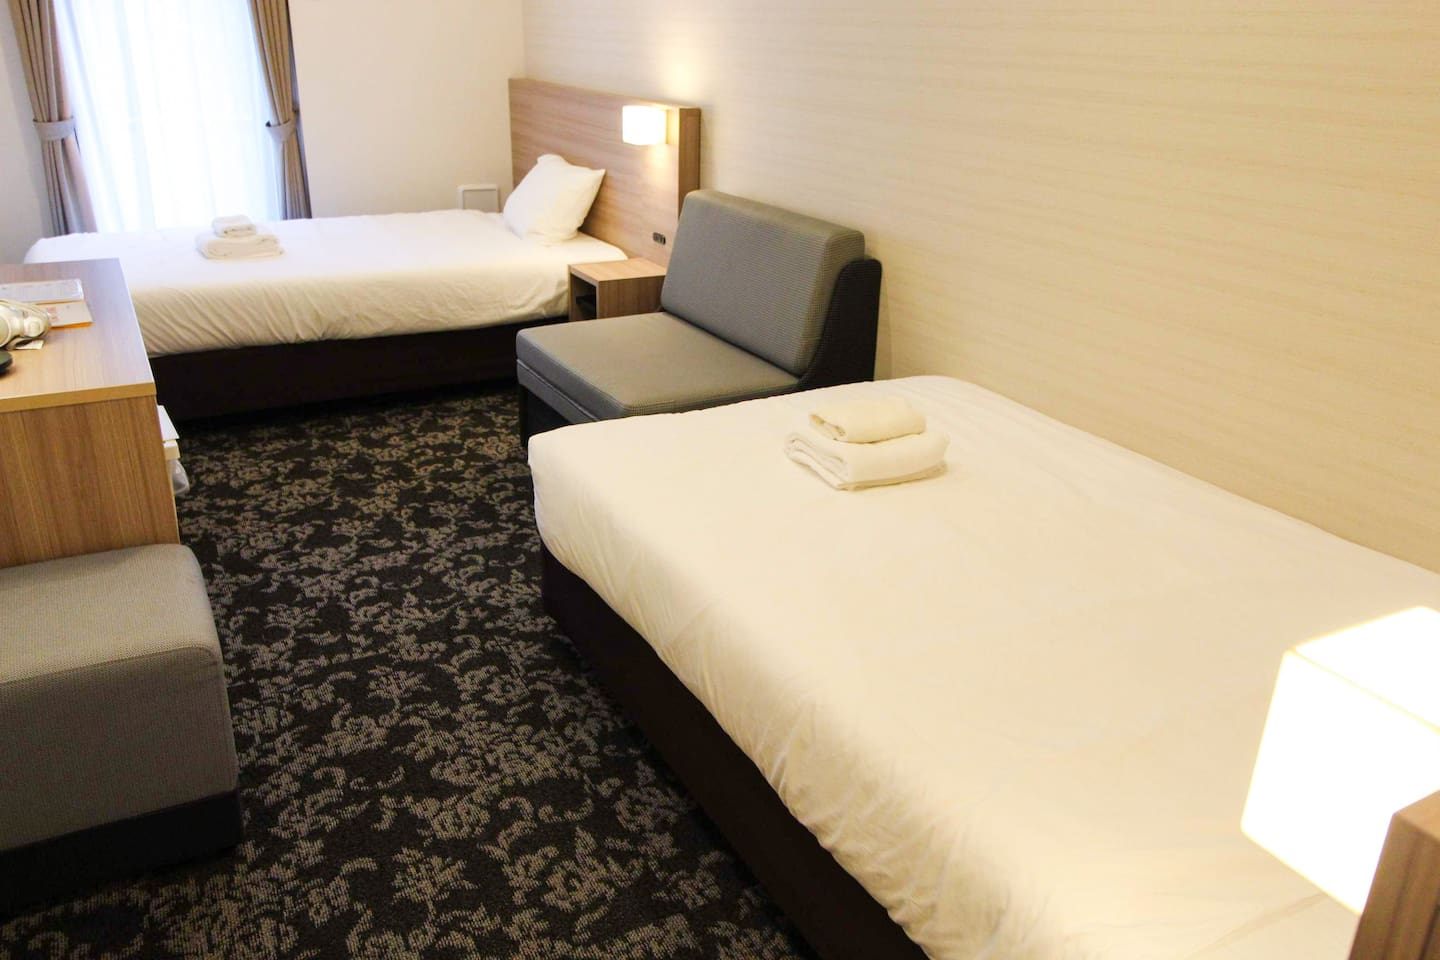 M-1 Tokyo Omorihigashi, two single beds and one sofa bed room type.